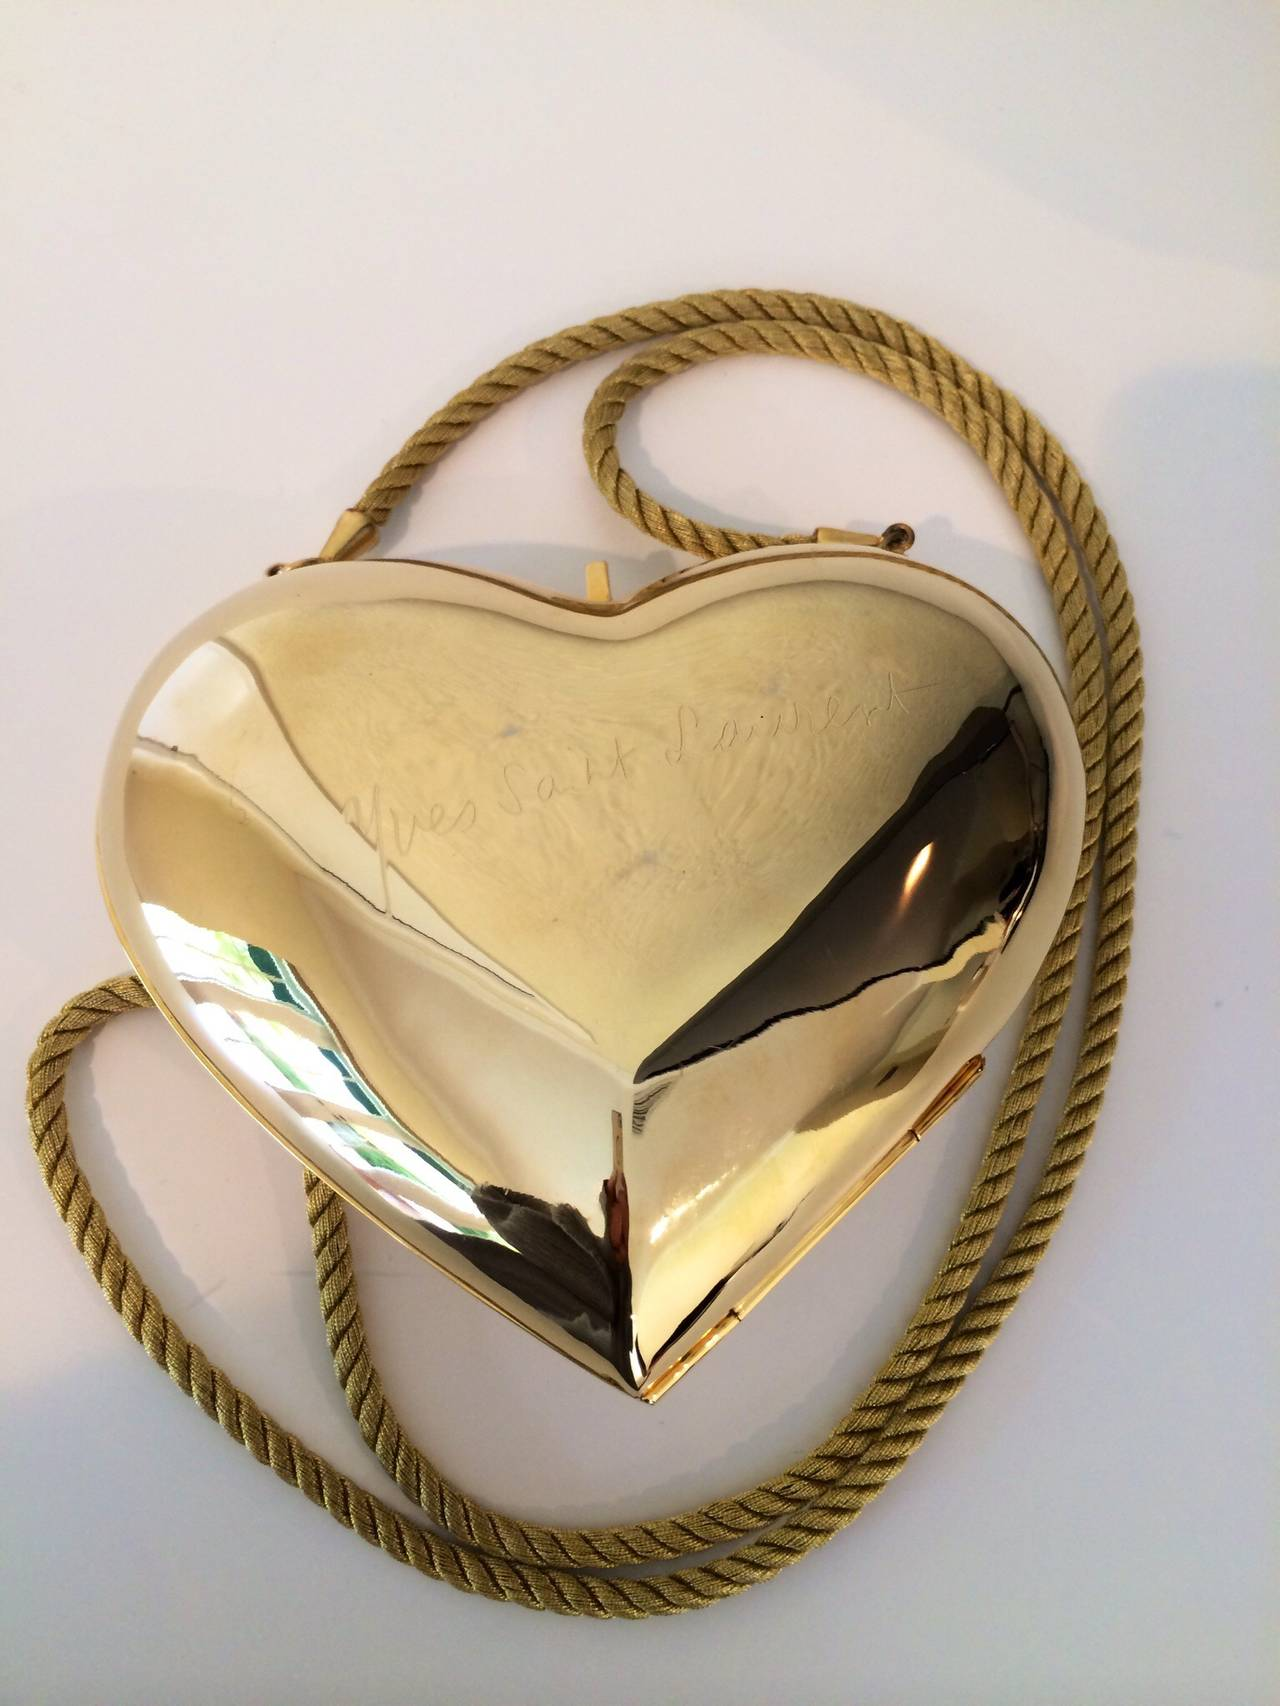 YSL / Yves Saint Laurent Heart Shaped Gold & Sapphire Crystal Minaudiere Bag 9